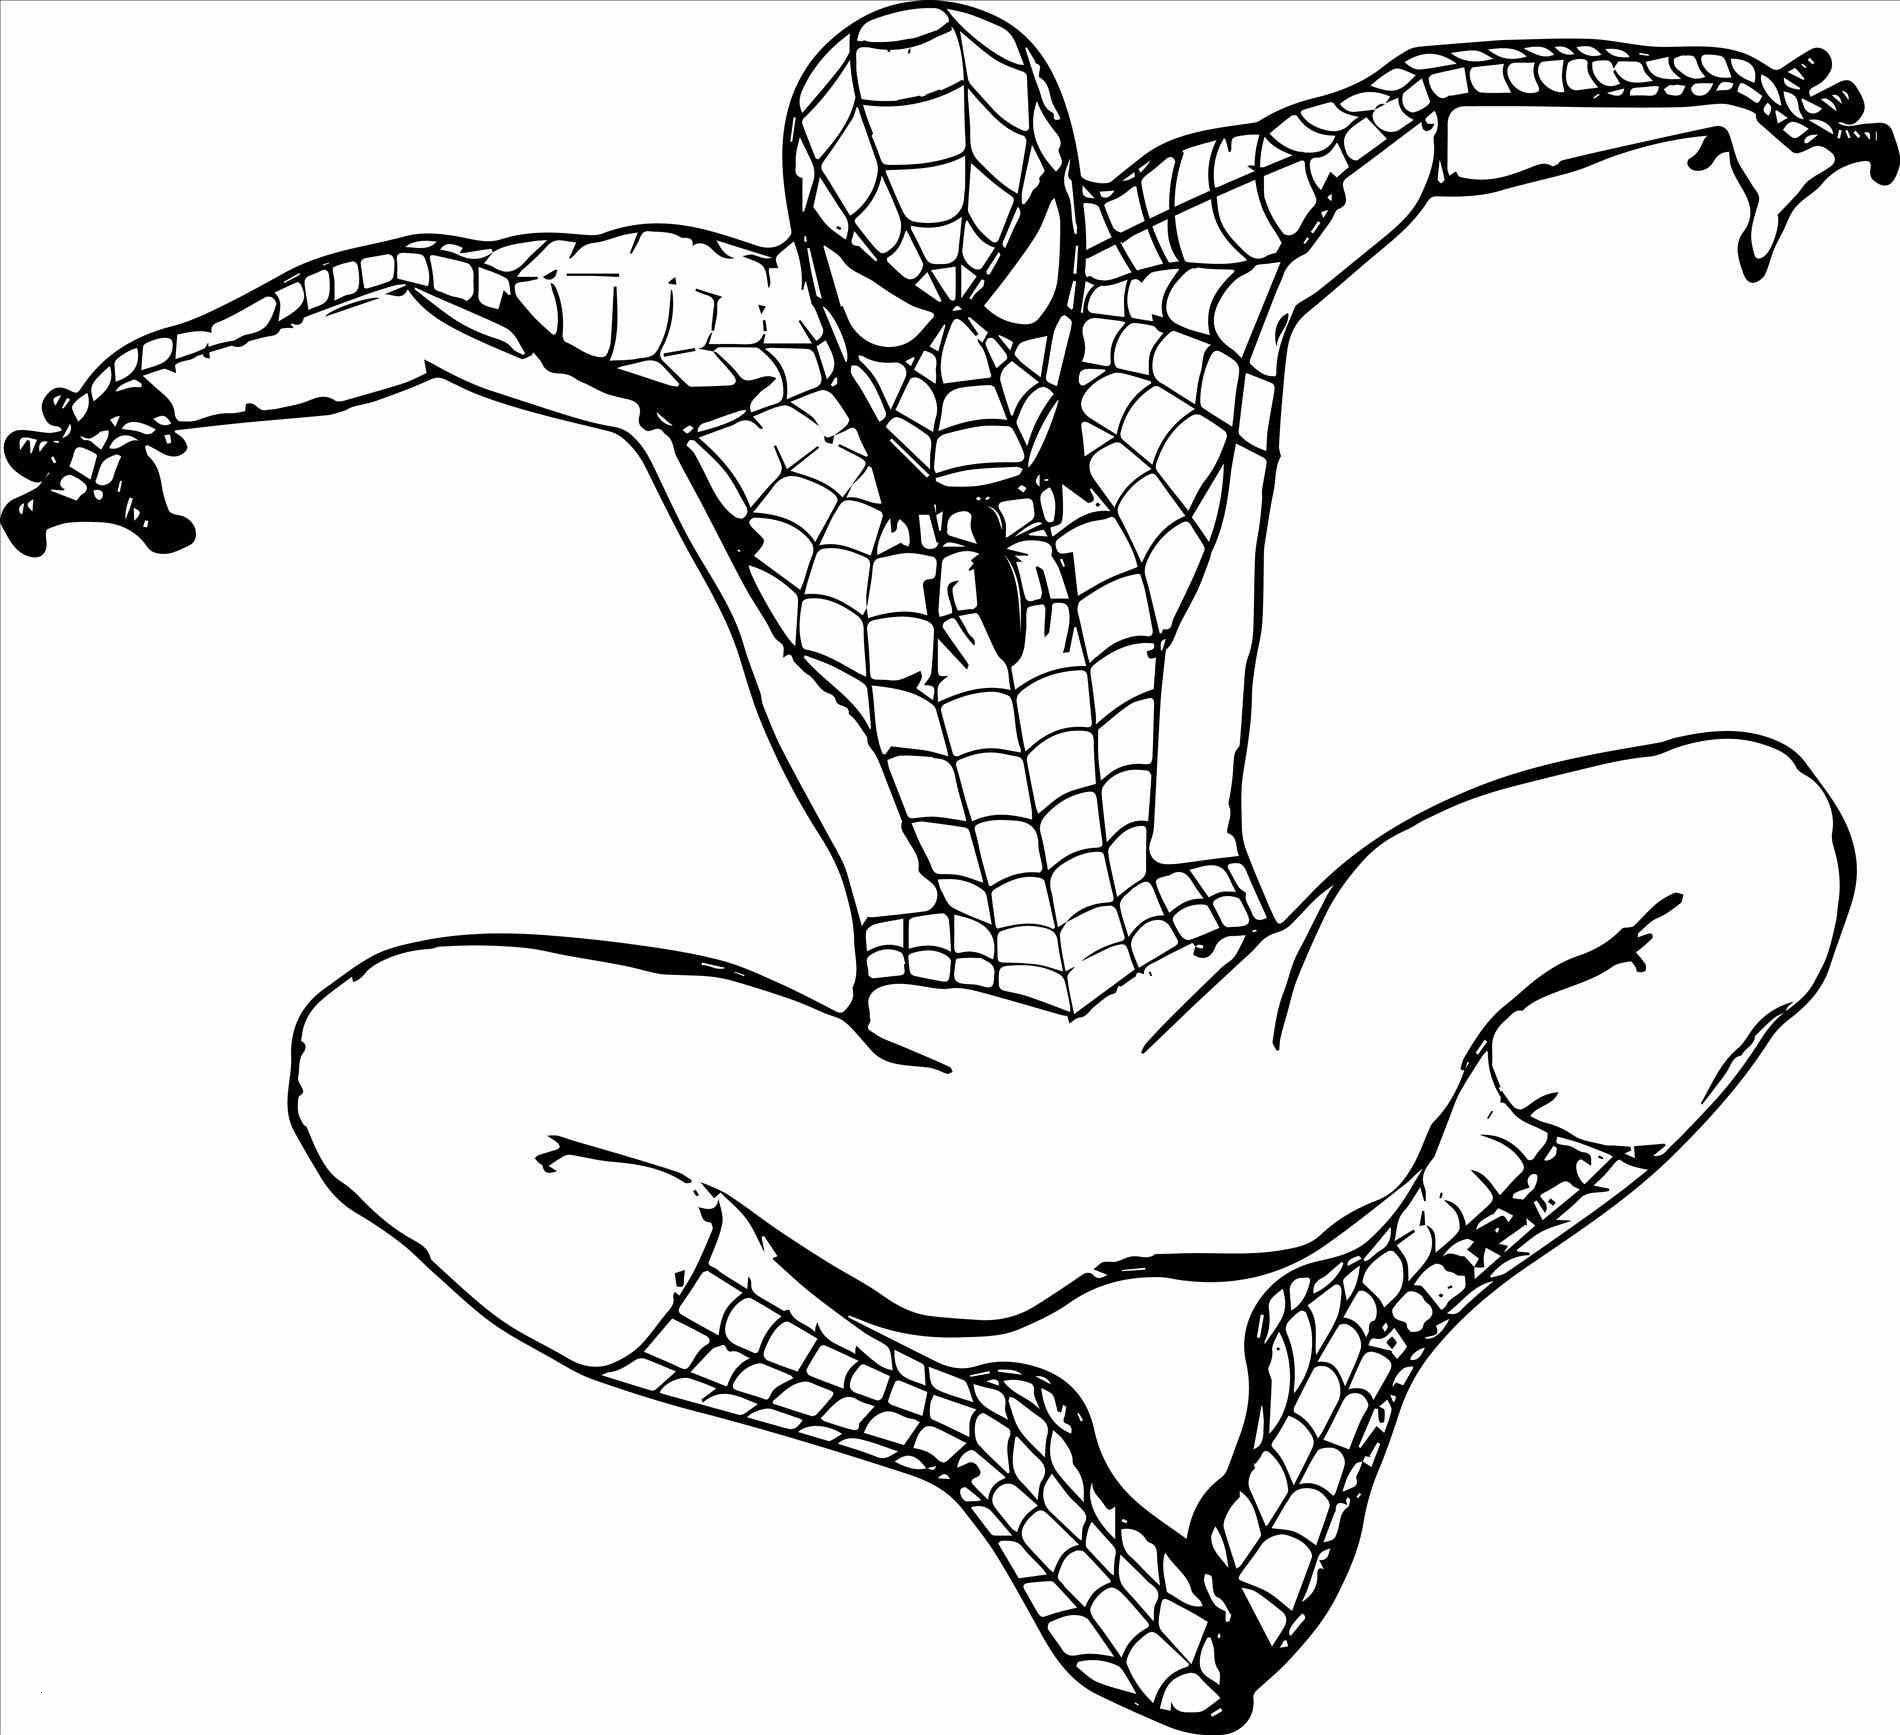 Lego Spiderman Coloring Pages  to Print 8o - To print for your project